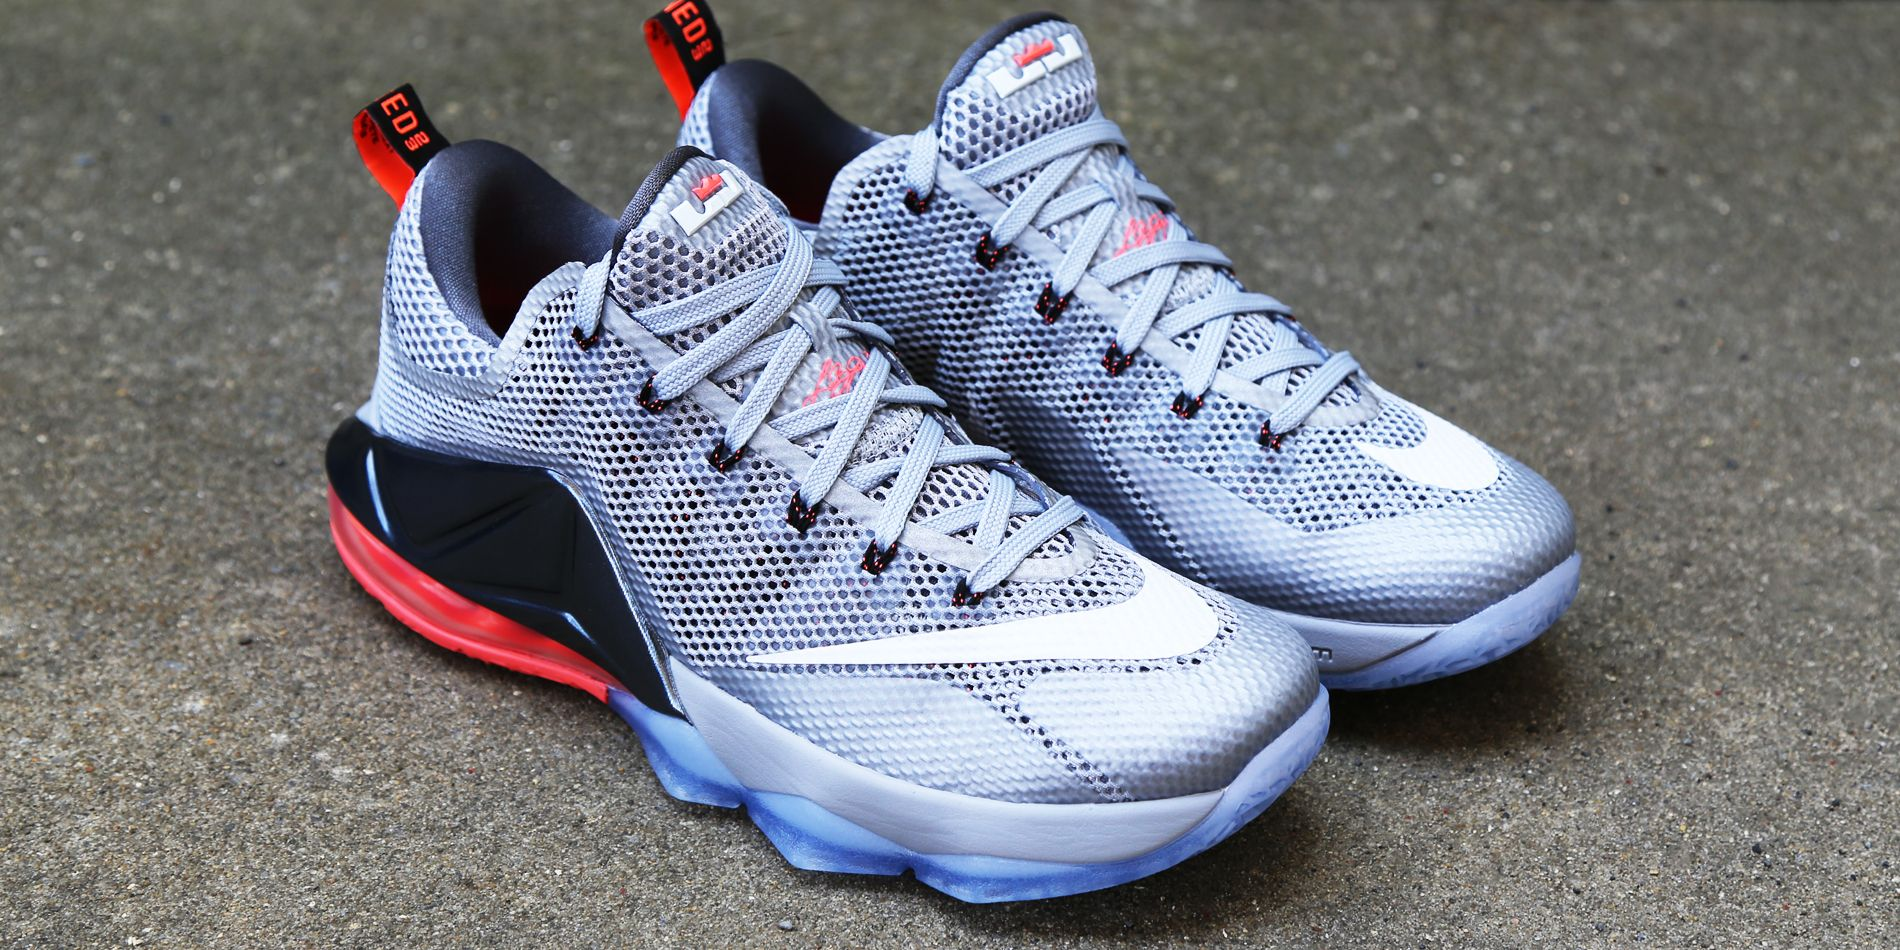 New Low cut version of the Nike LeBron 12 for the summer featuring metallic  silver.